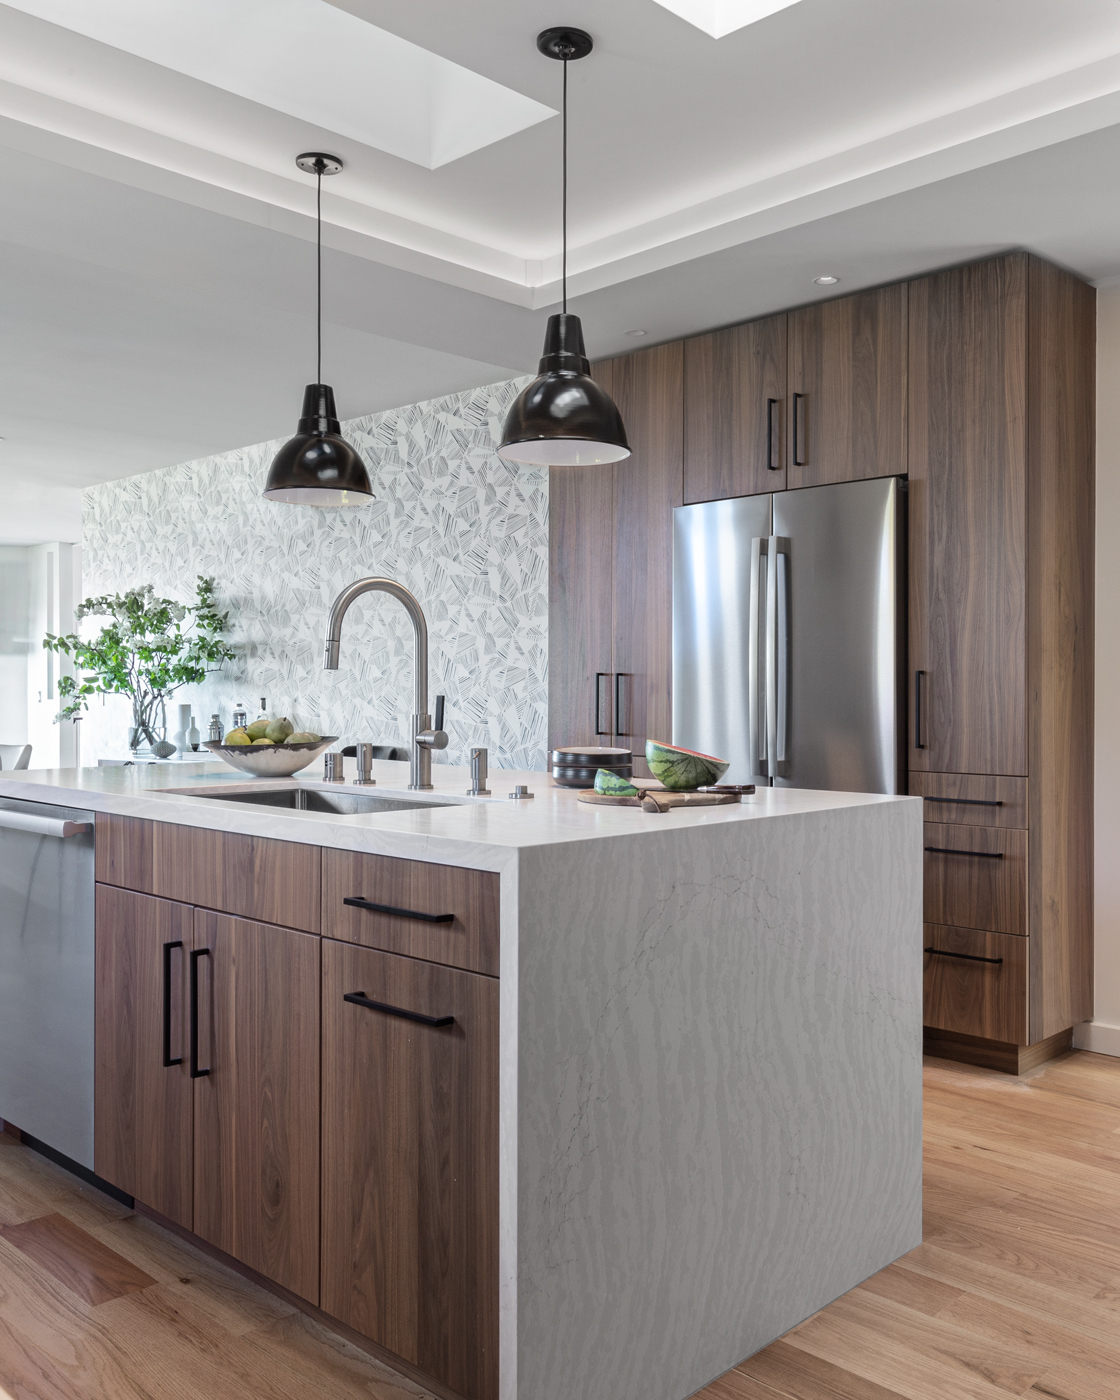 Contemporary Kitchen with Walnut Cabinetry and Quartz Countertops by Florence Livingston Interiors